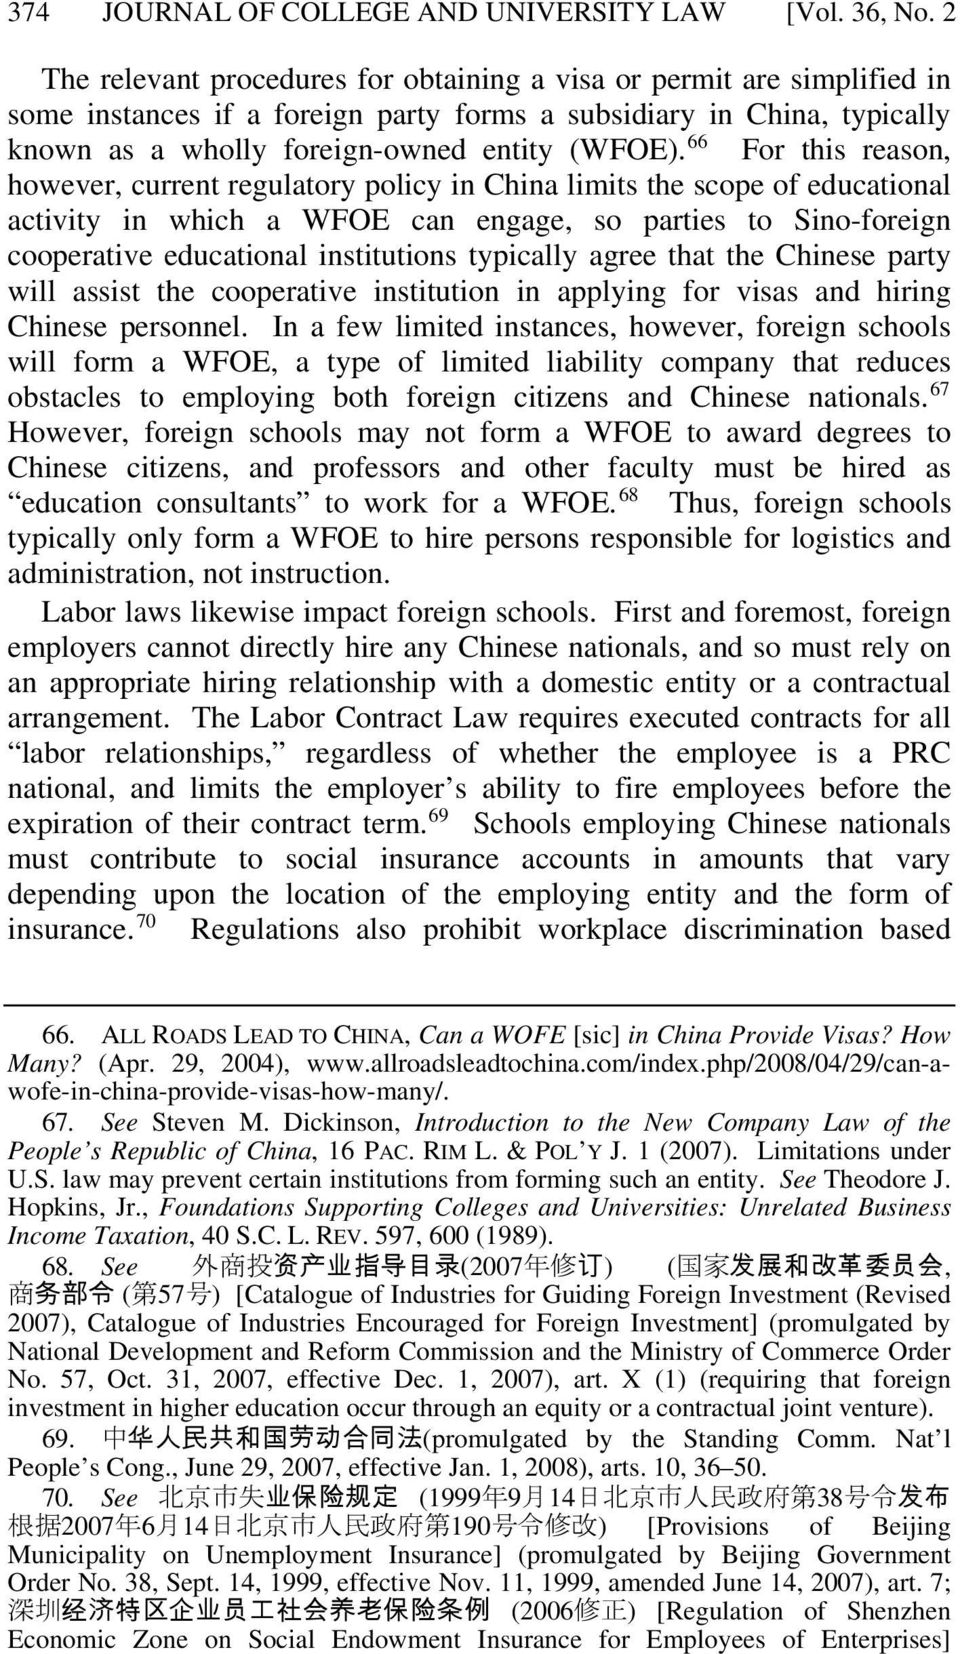 66 For this reason, however, current regulatory policy in China limits the scope of educational activity in which a WFOE can engage, so parties to Sino-foreign cooperative educational institutions